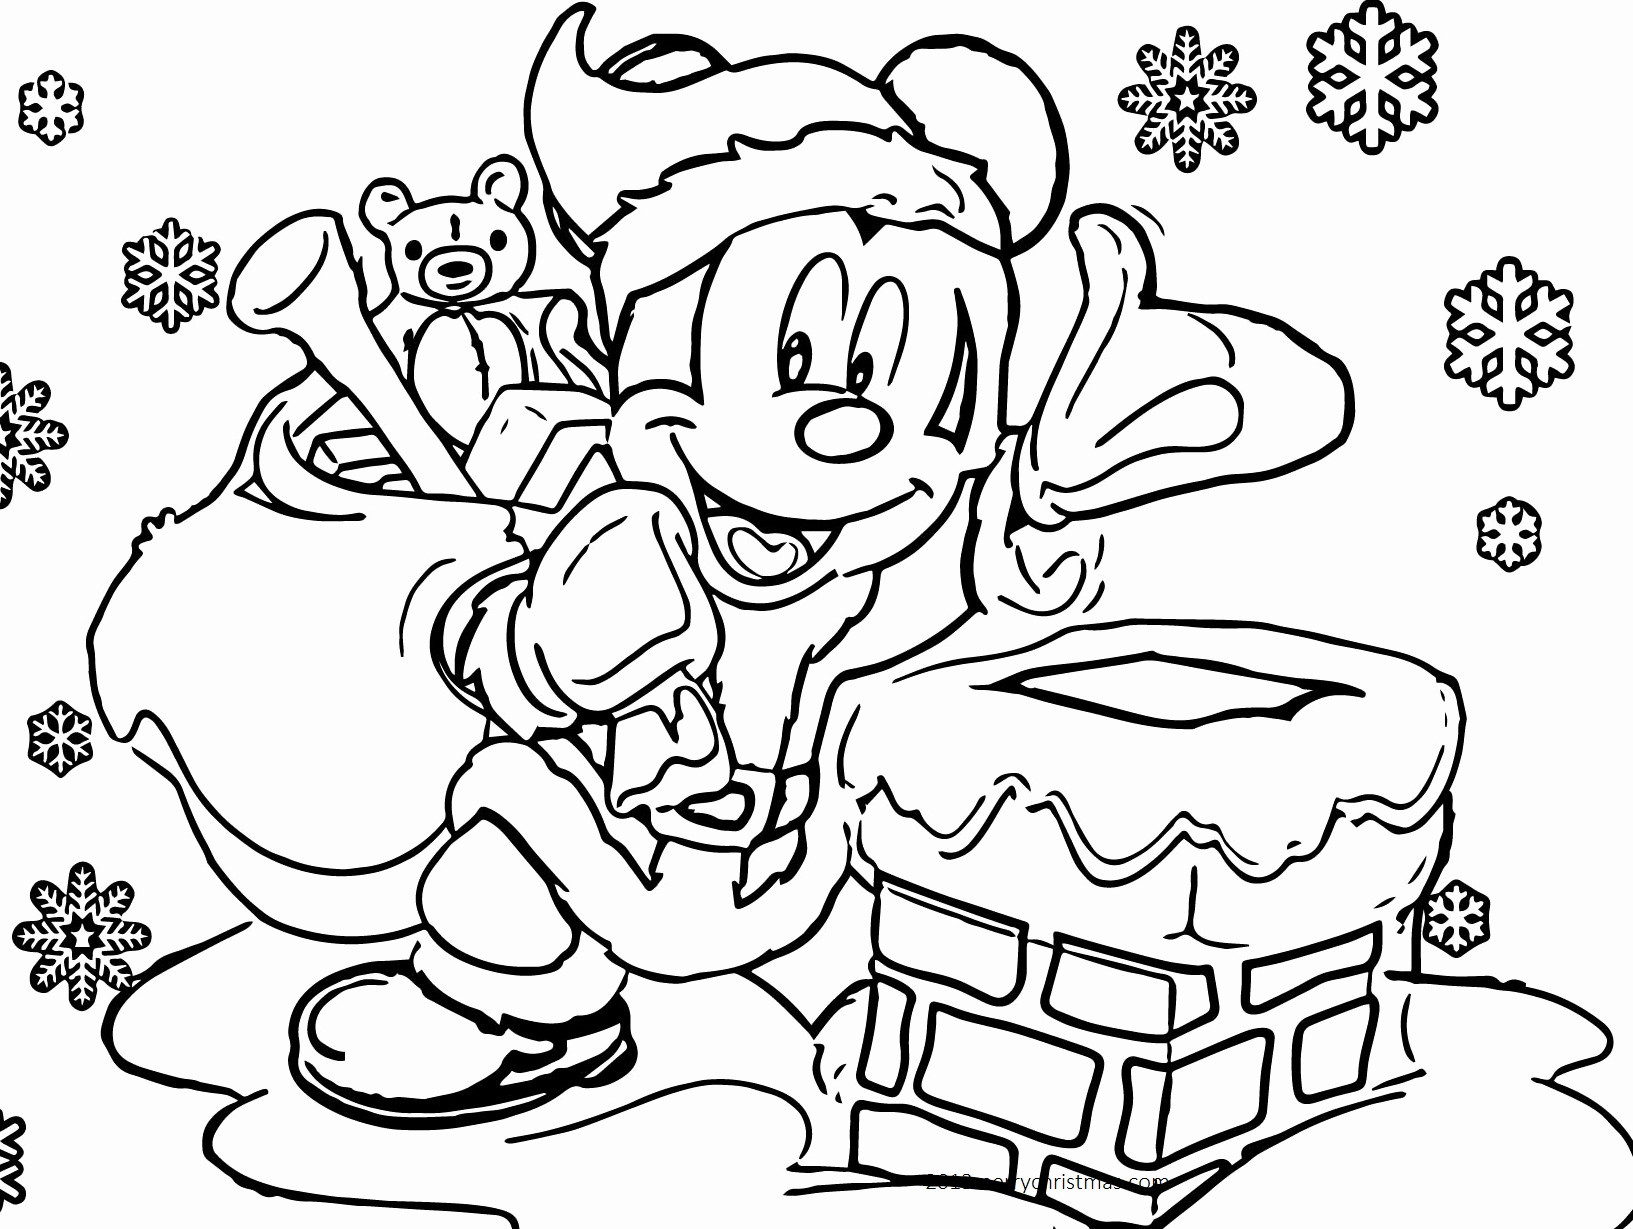 Xmas Coloring Pics With Pages For Children